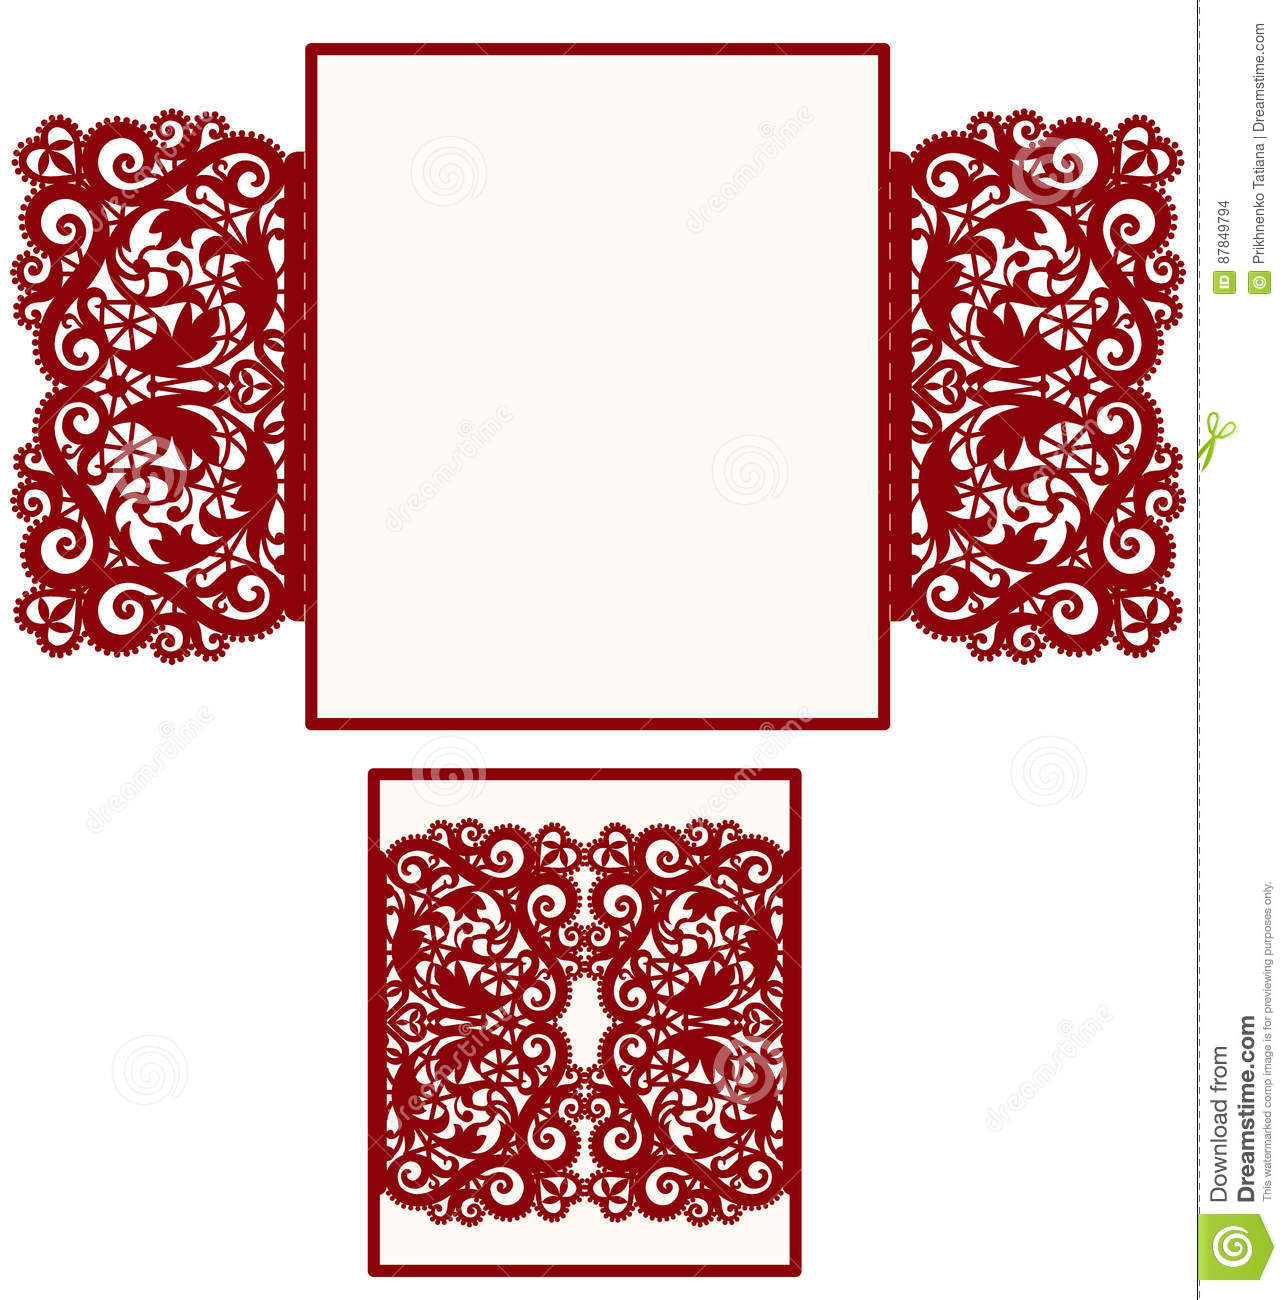 Layout wedding invitation stock vector. Illustration of pattern ...